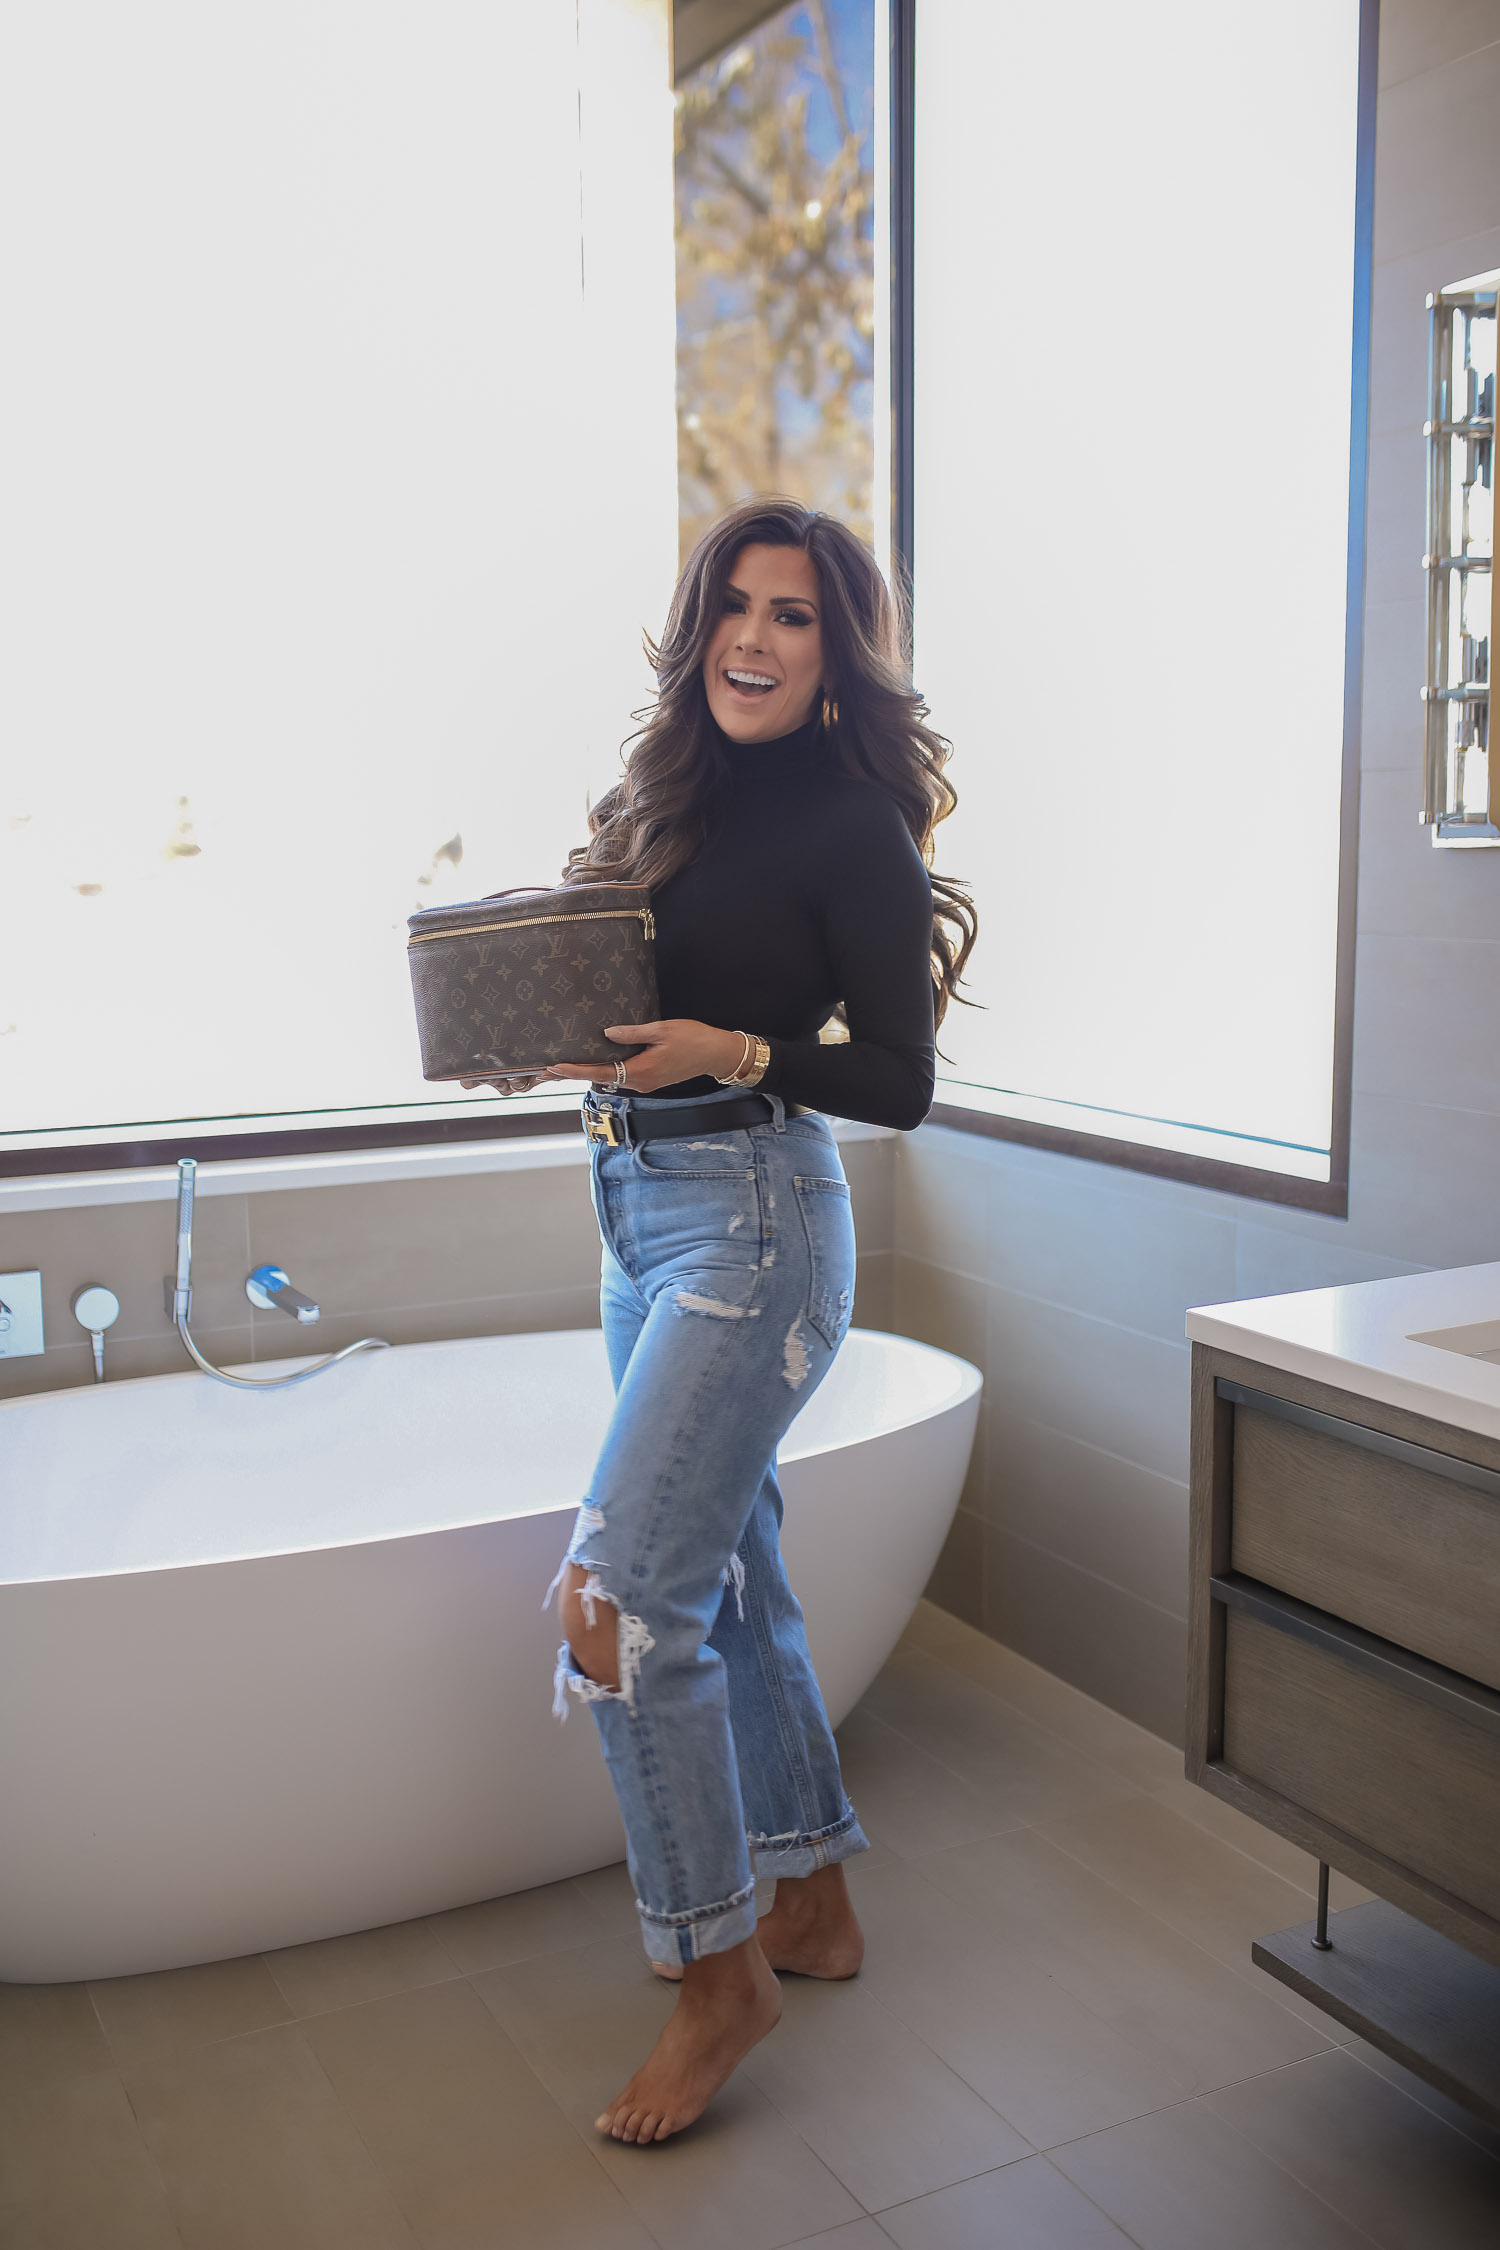 Sephora savings event fall 2020, sephora VIB sale event, beauty blogger sephora favorites fall 2020, emily ann gemma-6 |Sephora Beauty Insider Sale by popular US beauty blog, The Sweetest Thing: image of Emily Gemma wearing a black turtle neck and distressed jeans and holding a Louis Vuitton makeup case in bathroom with a modern white soaking tub.